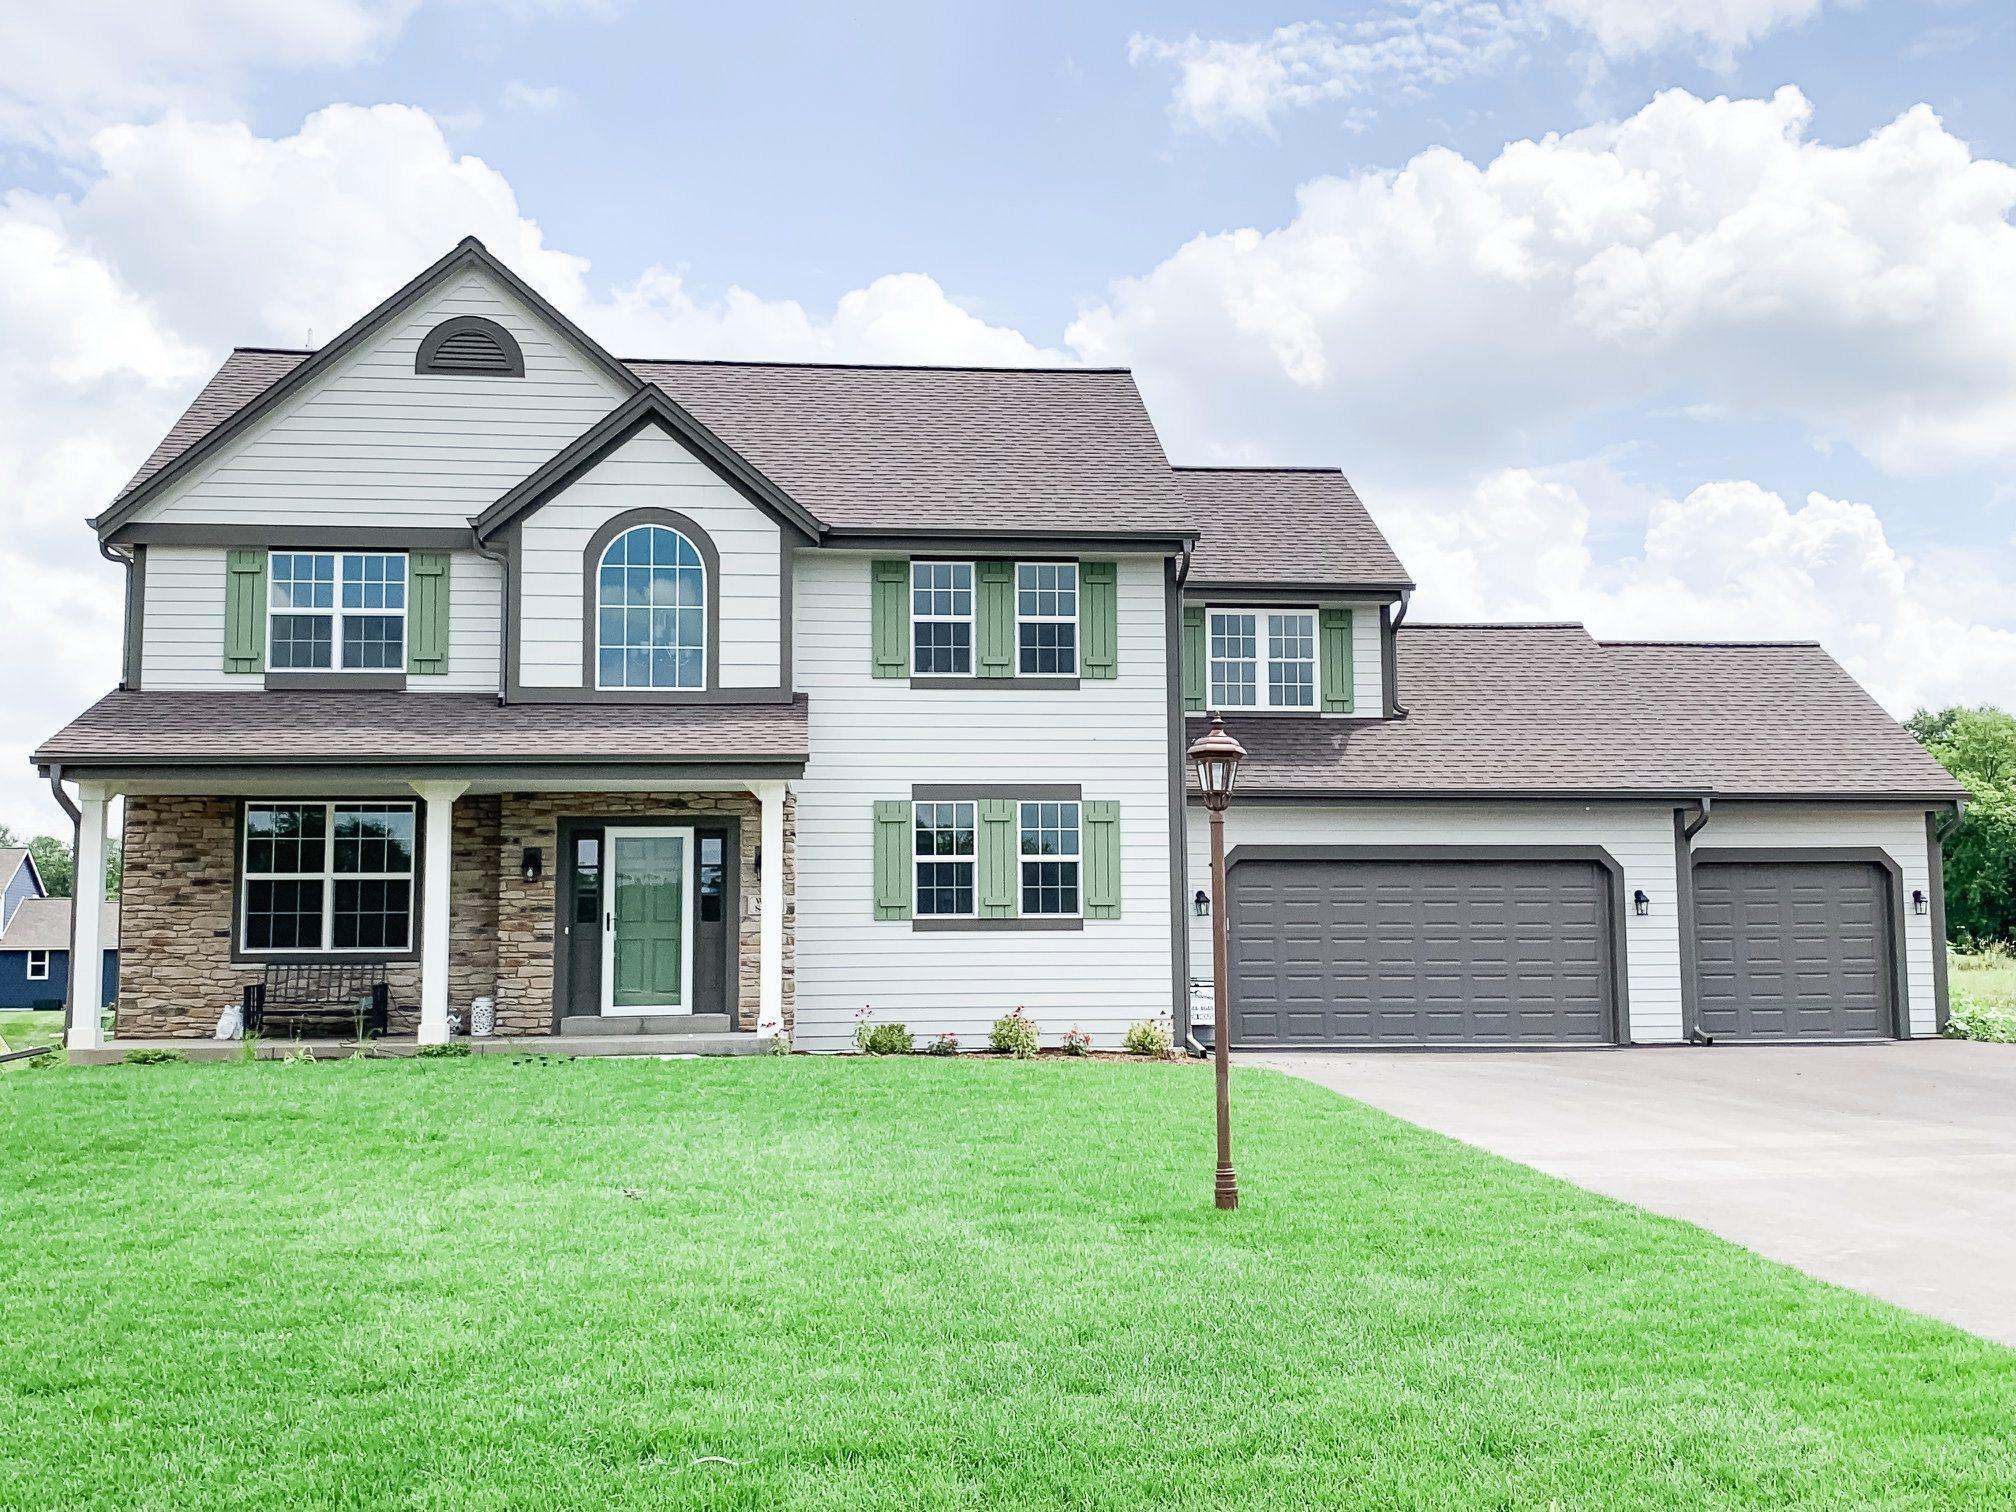 W223S4272 Spafford Ln, Waukesha, Wisconsin 53189, 4 Bedrooms Bedrooms, ,2 BathroomsBathrooms,Single-Family,For Sale,Spafford Ln,1627615